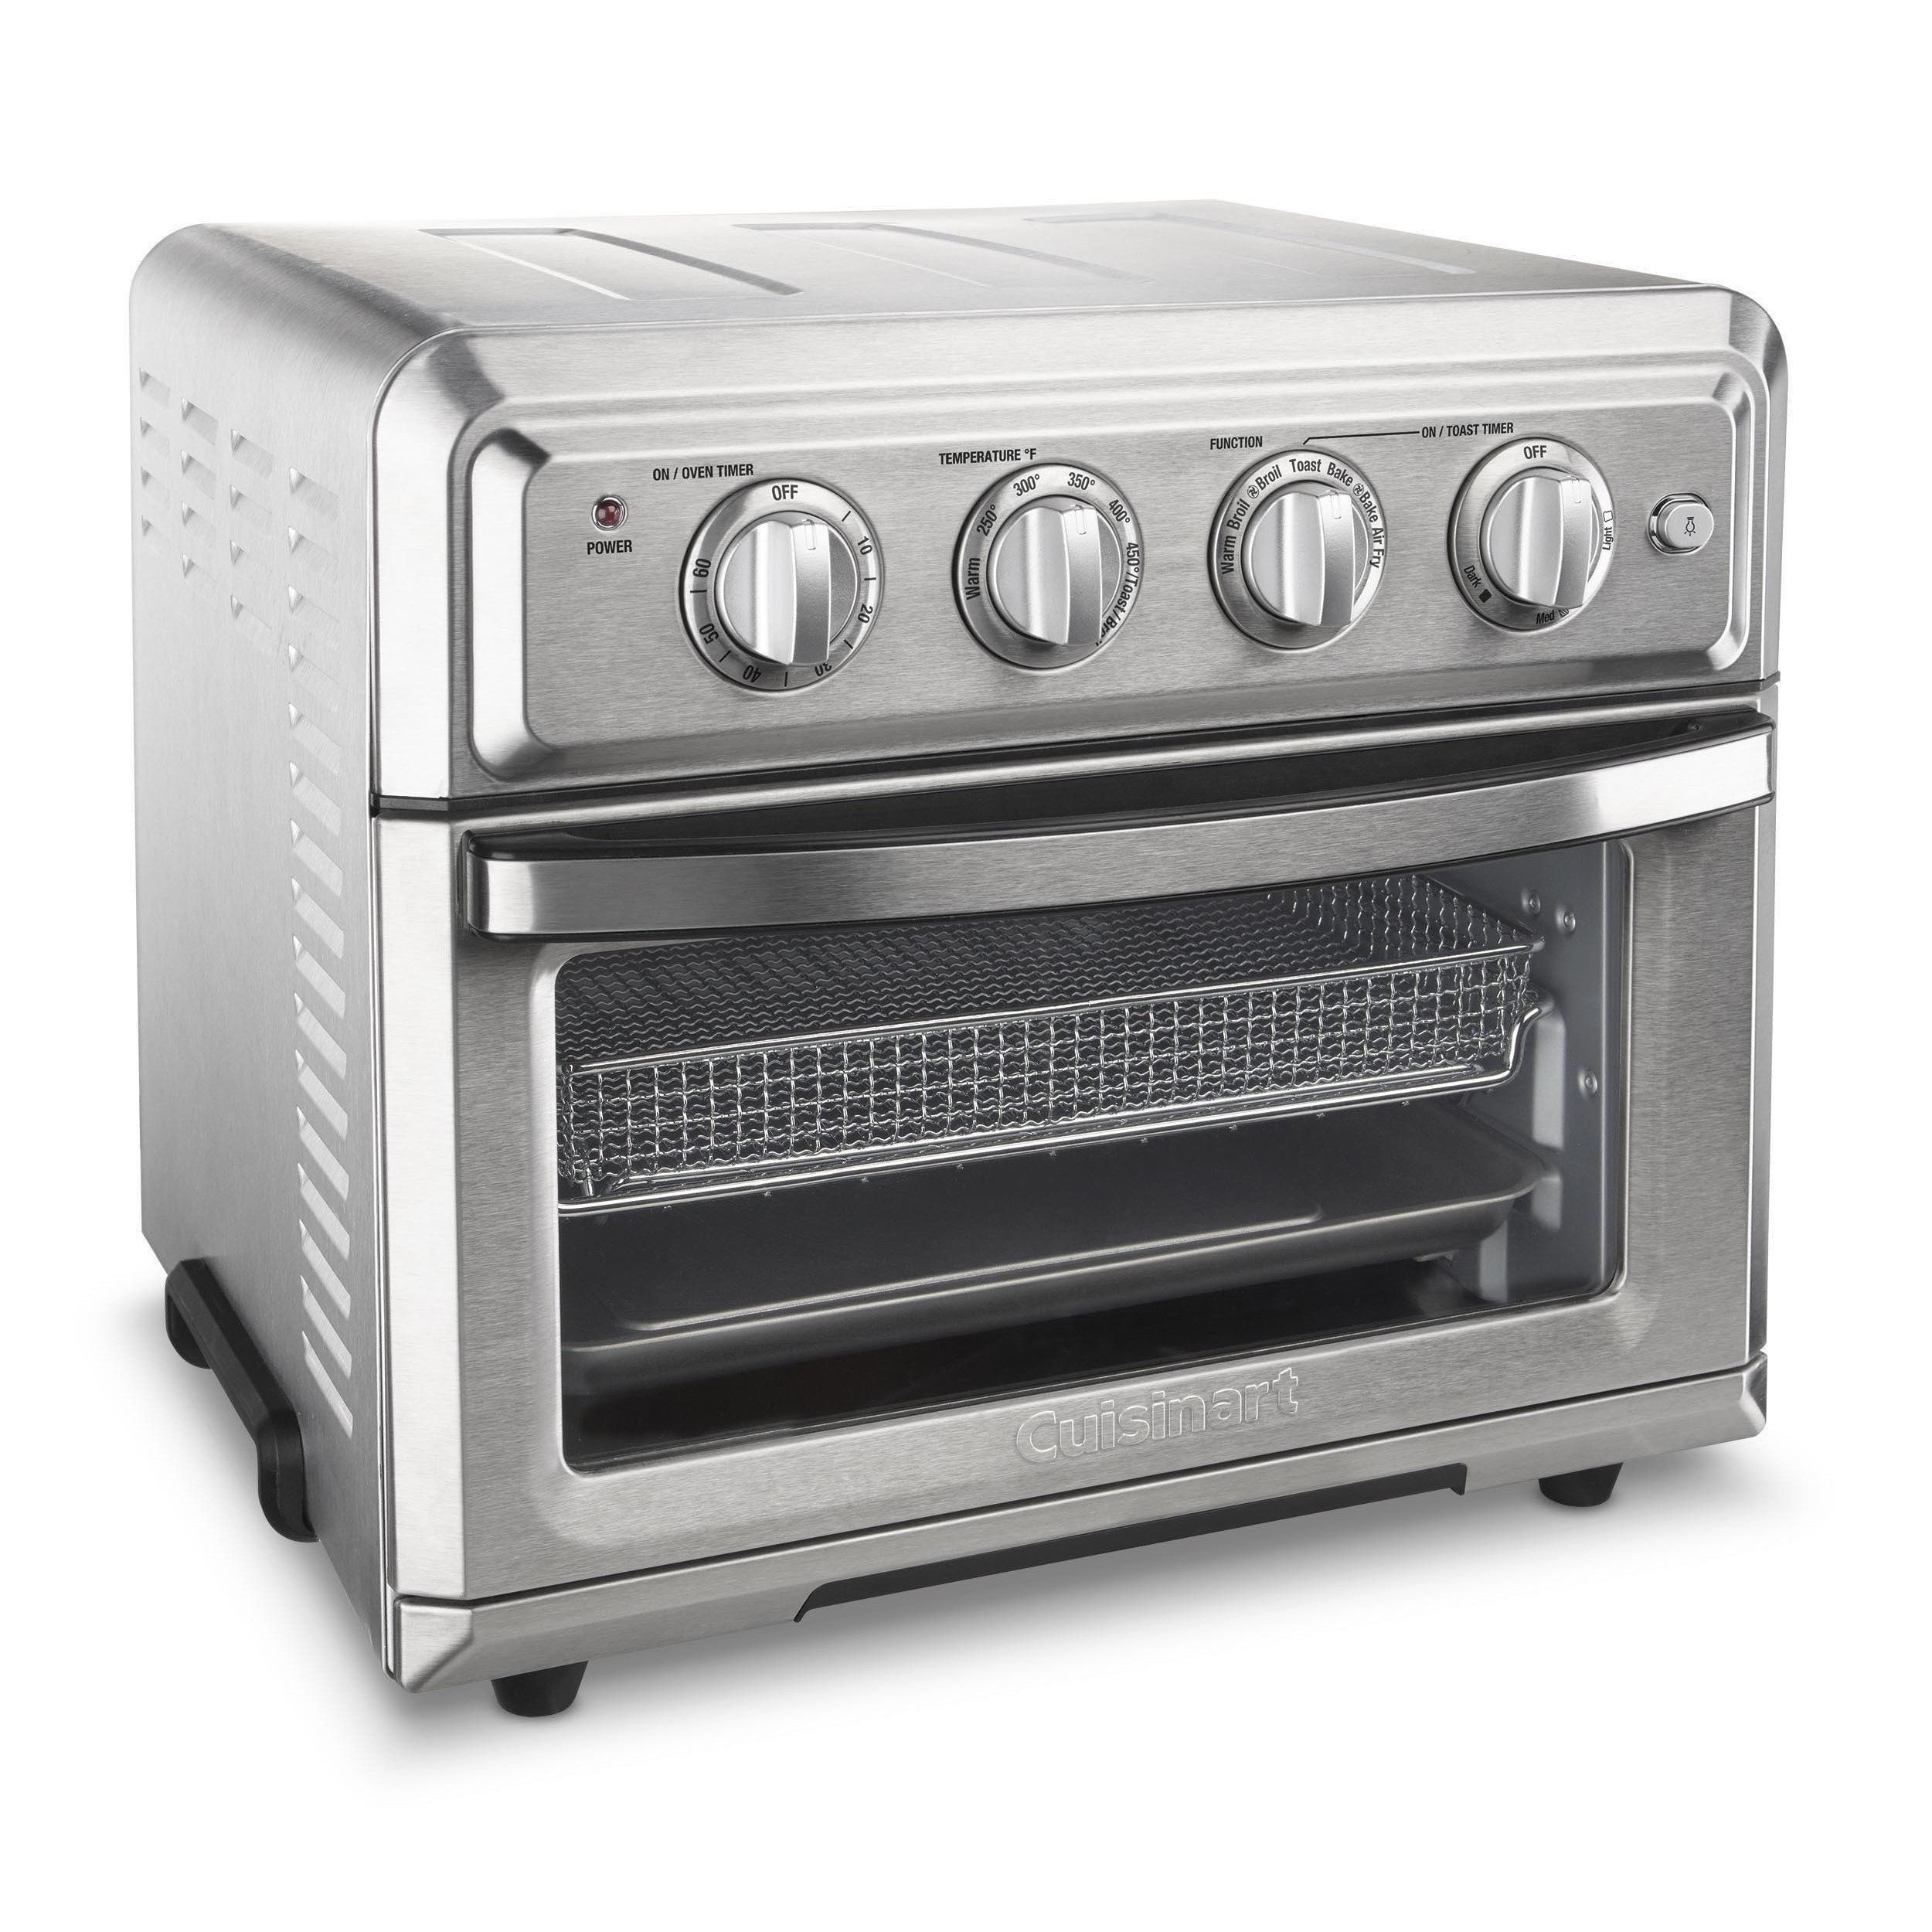 Cuisinart Toa 60 Stainless Steel Combination Air Fryer Toaster Oven With Images Convection Toaster Oven Toaster Oven Stainless Steel Oven